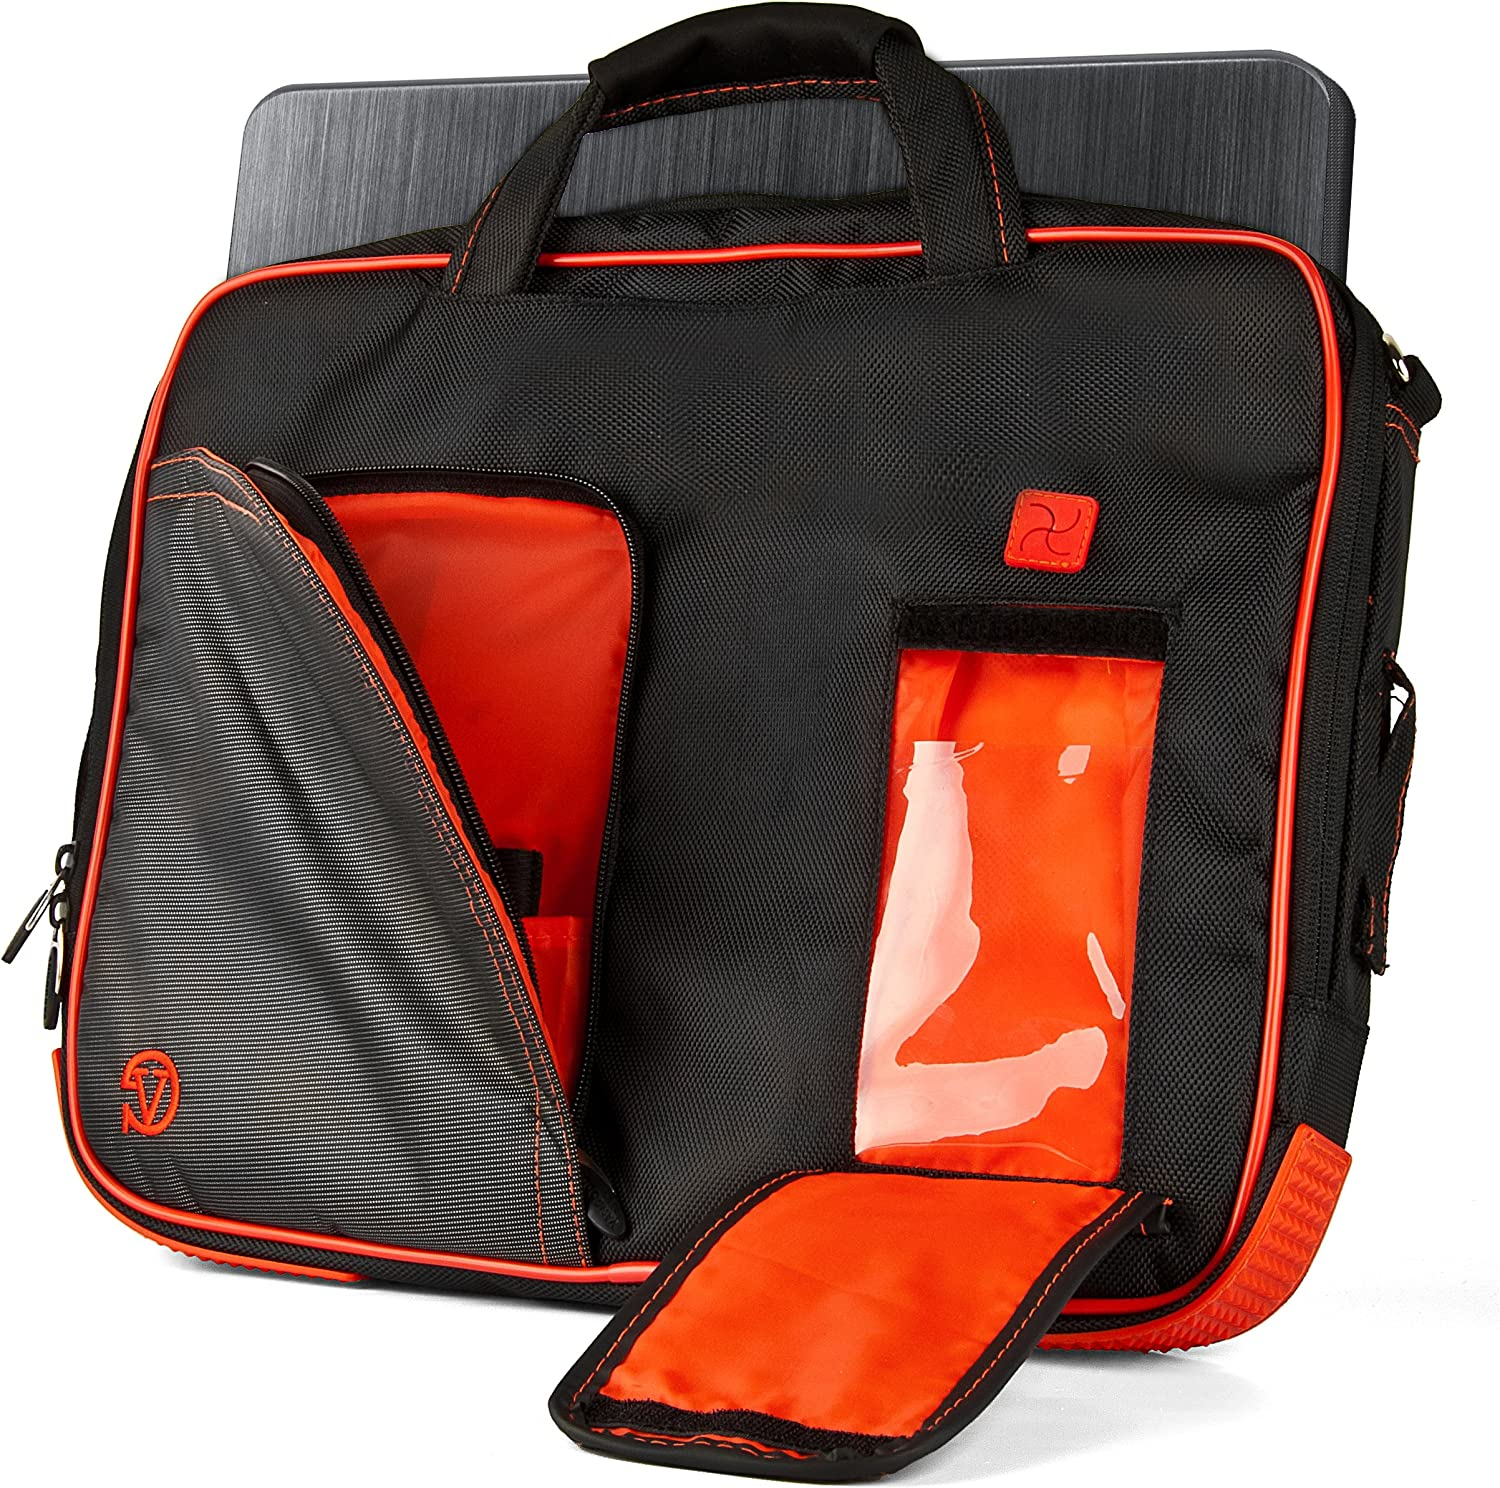 Pindar Briefcase + Messenger Bag for 15 to 17.3 inch Laptops and Tablets with Removable Shoulder Strap - Black/Bright Red